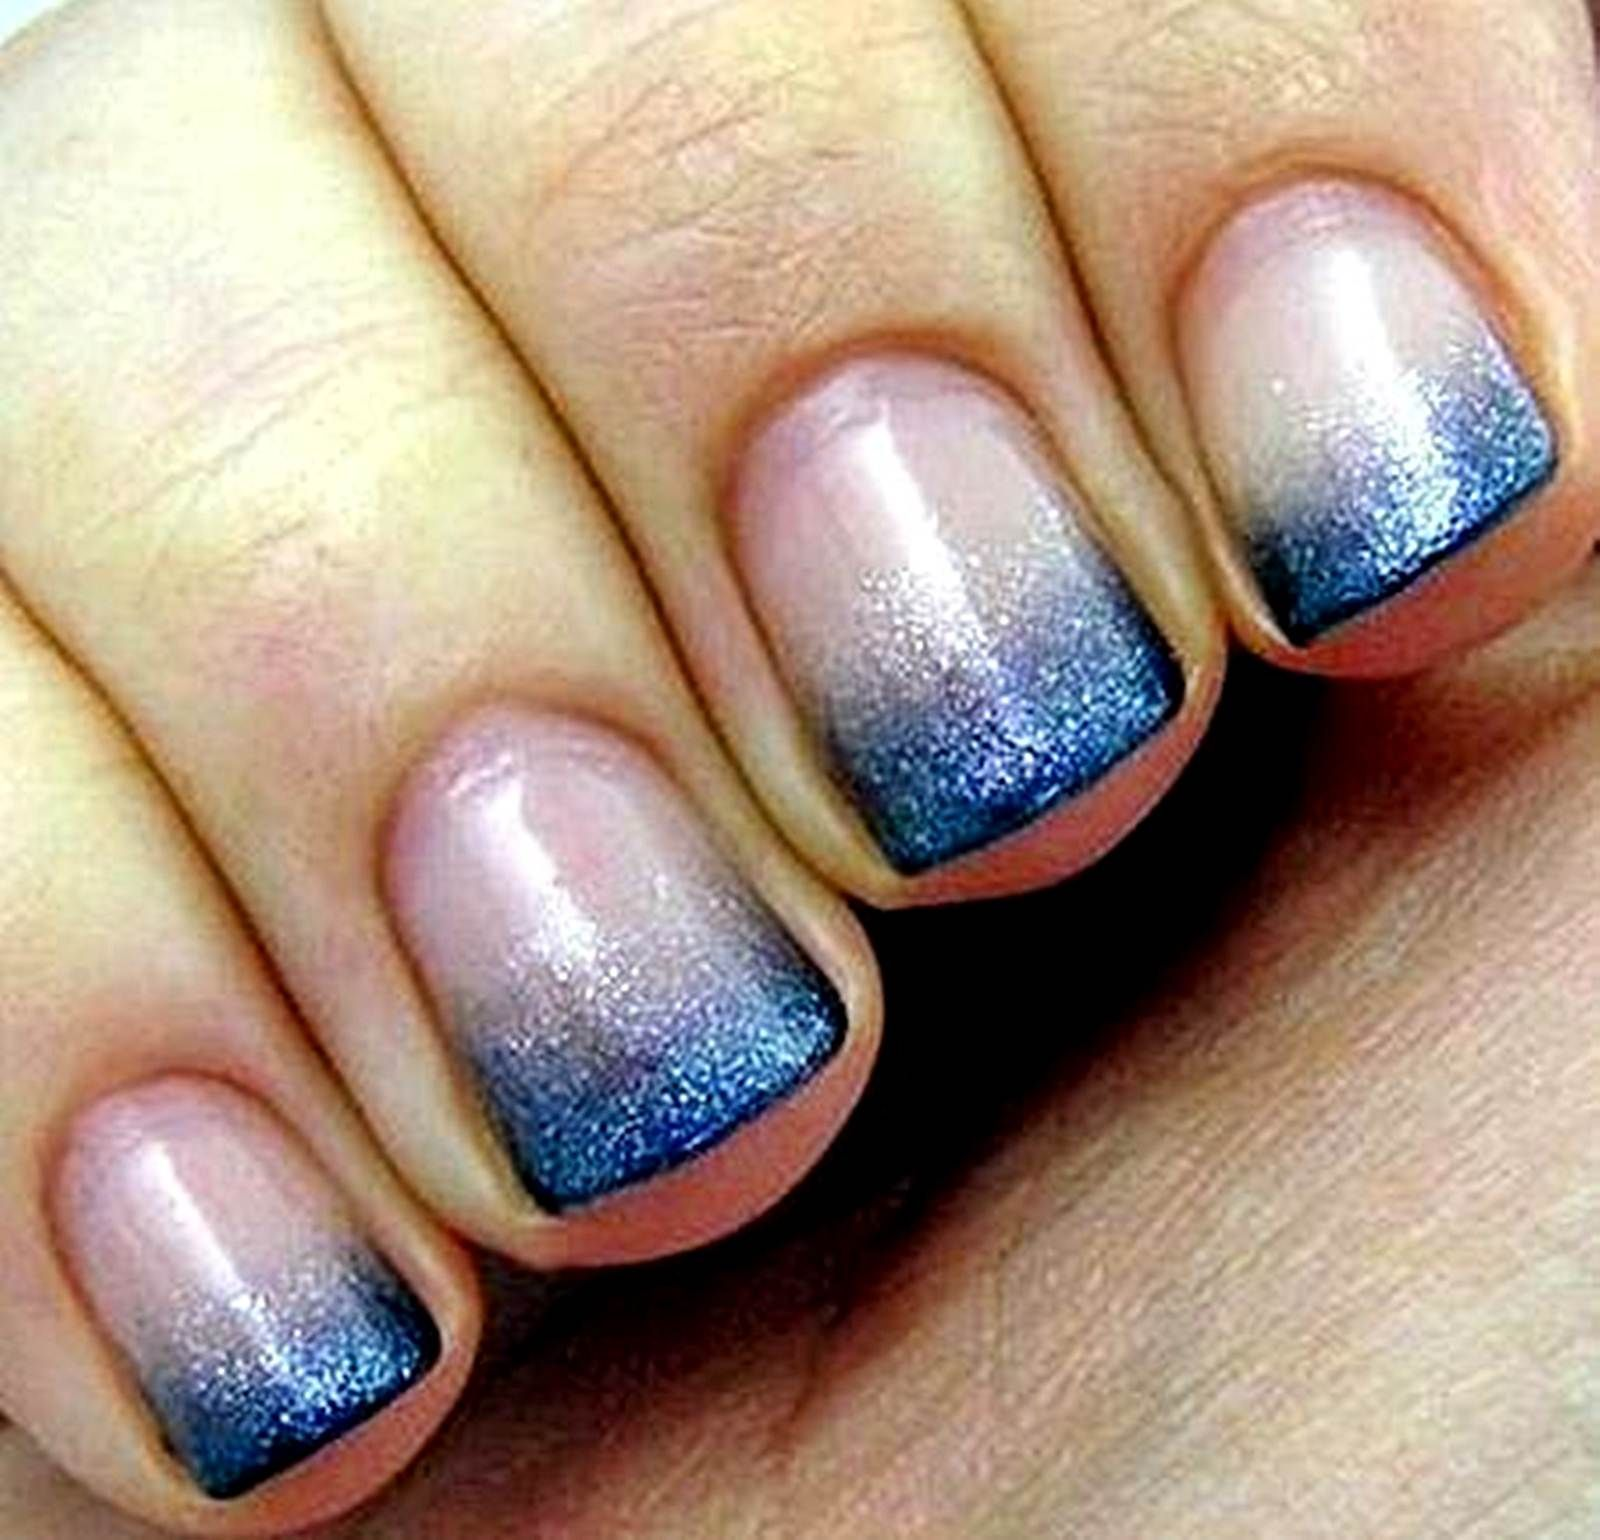 nail tip designs | Posts related to acrylic nails design tips ...